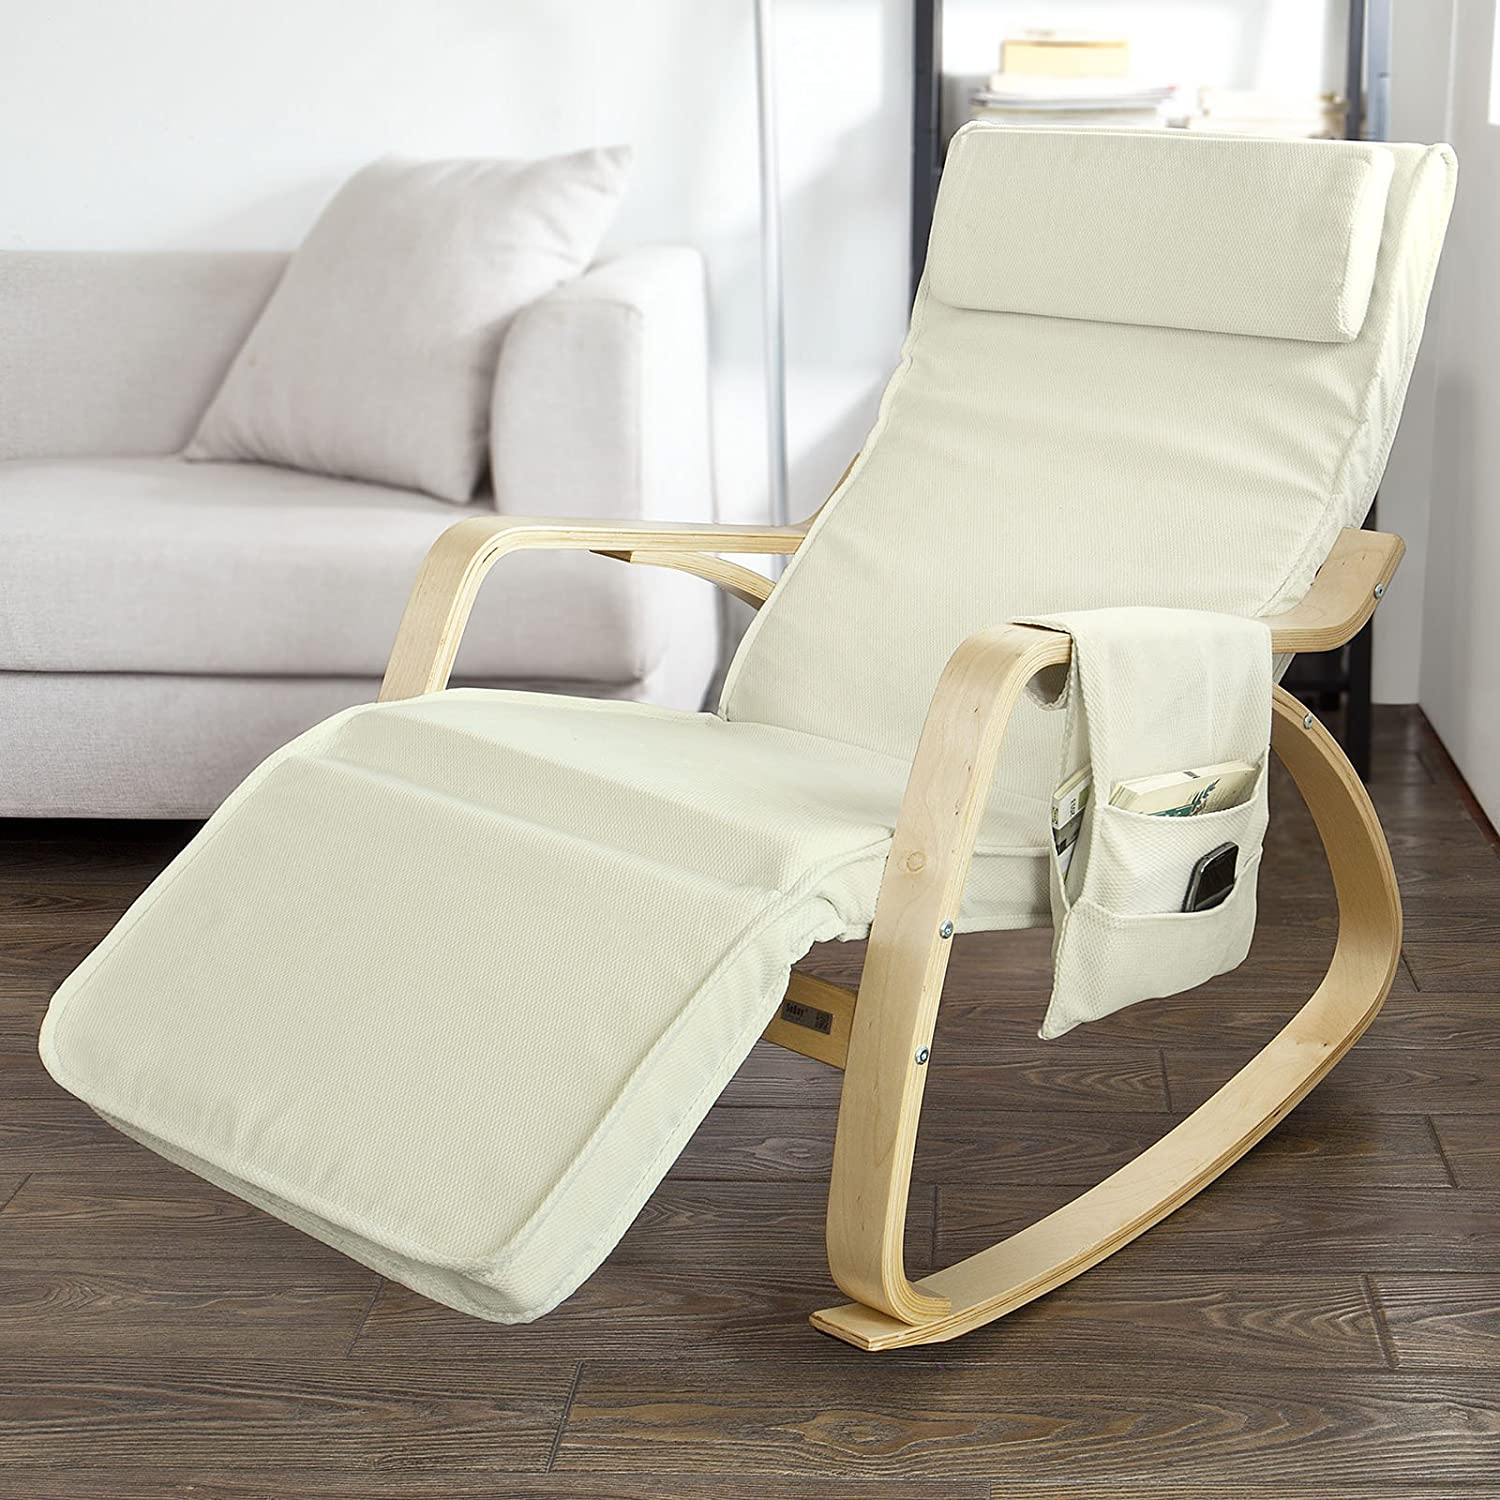 Comfortable Rocking Chair Sobuy Fst18 W Comfortable Relax Rocking Chair Lounge